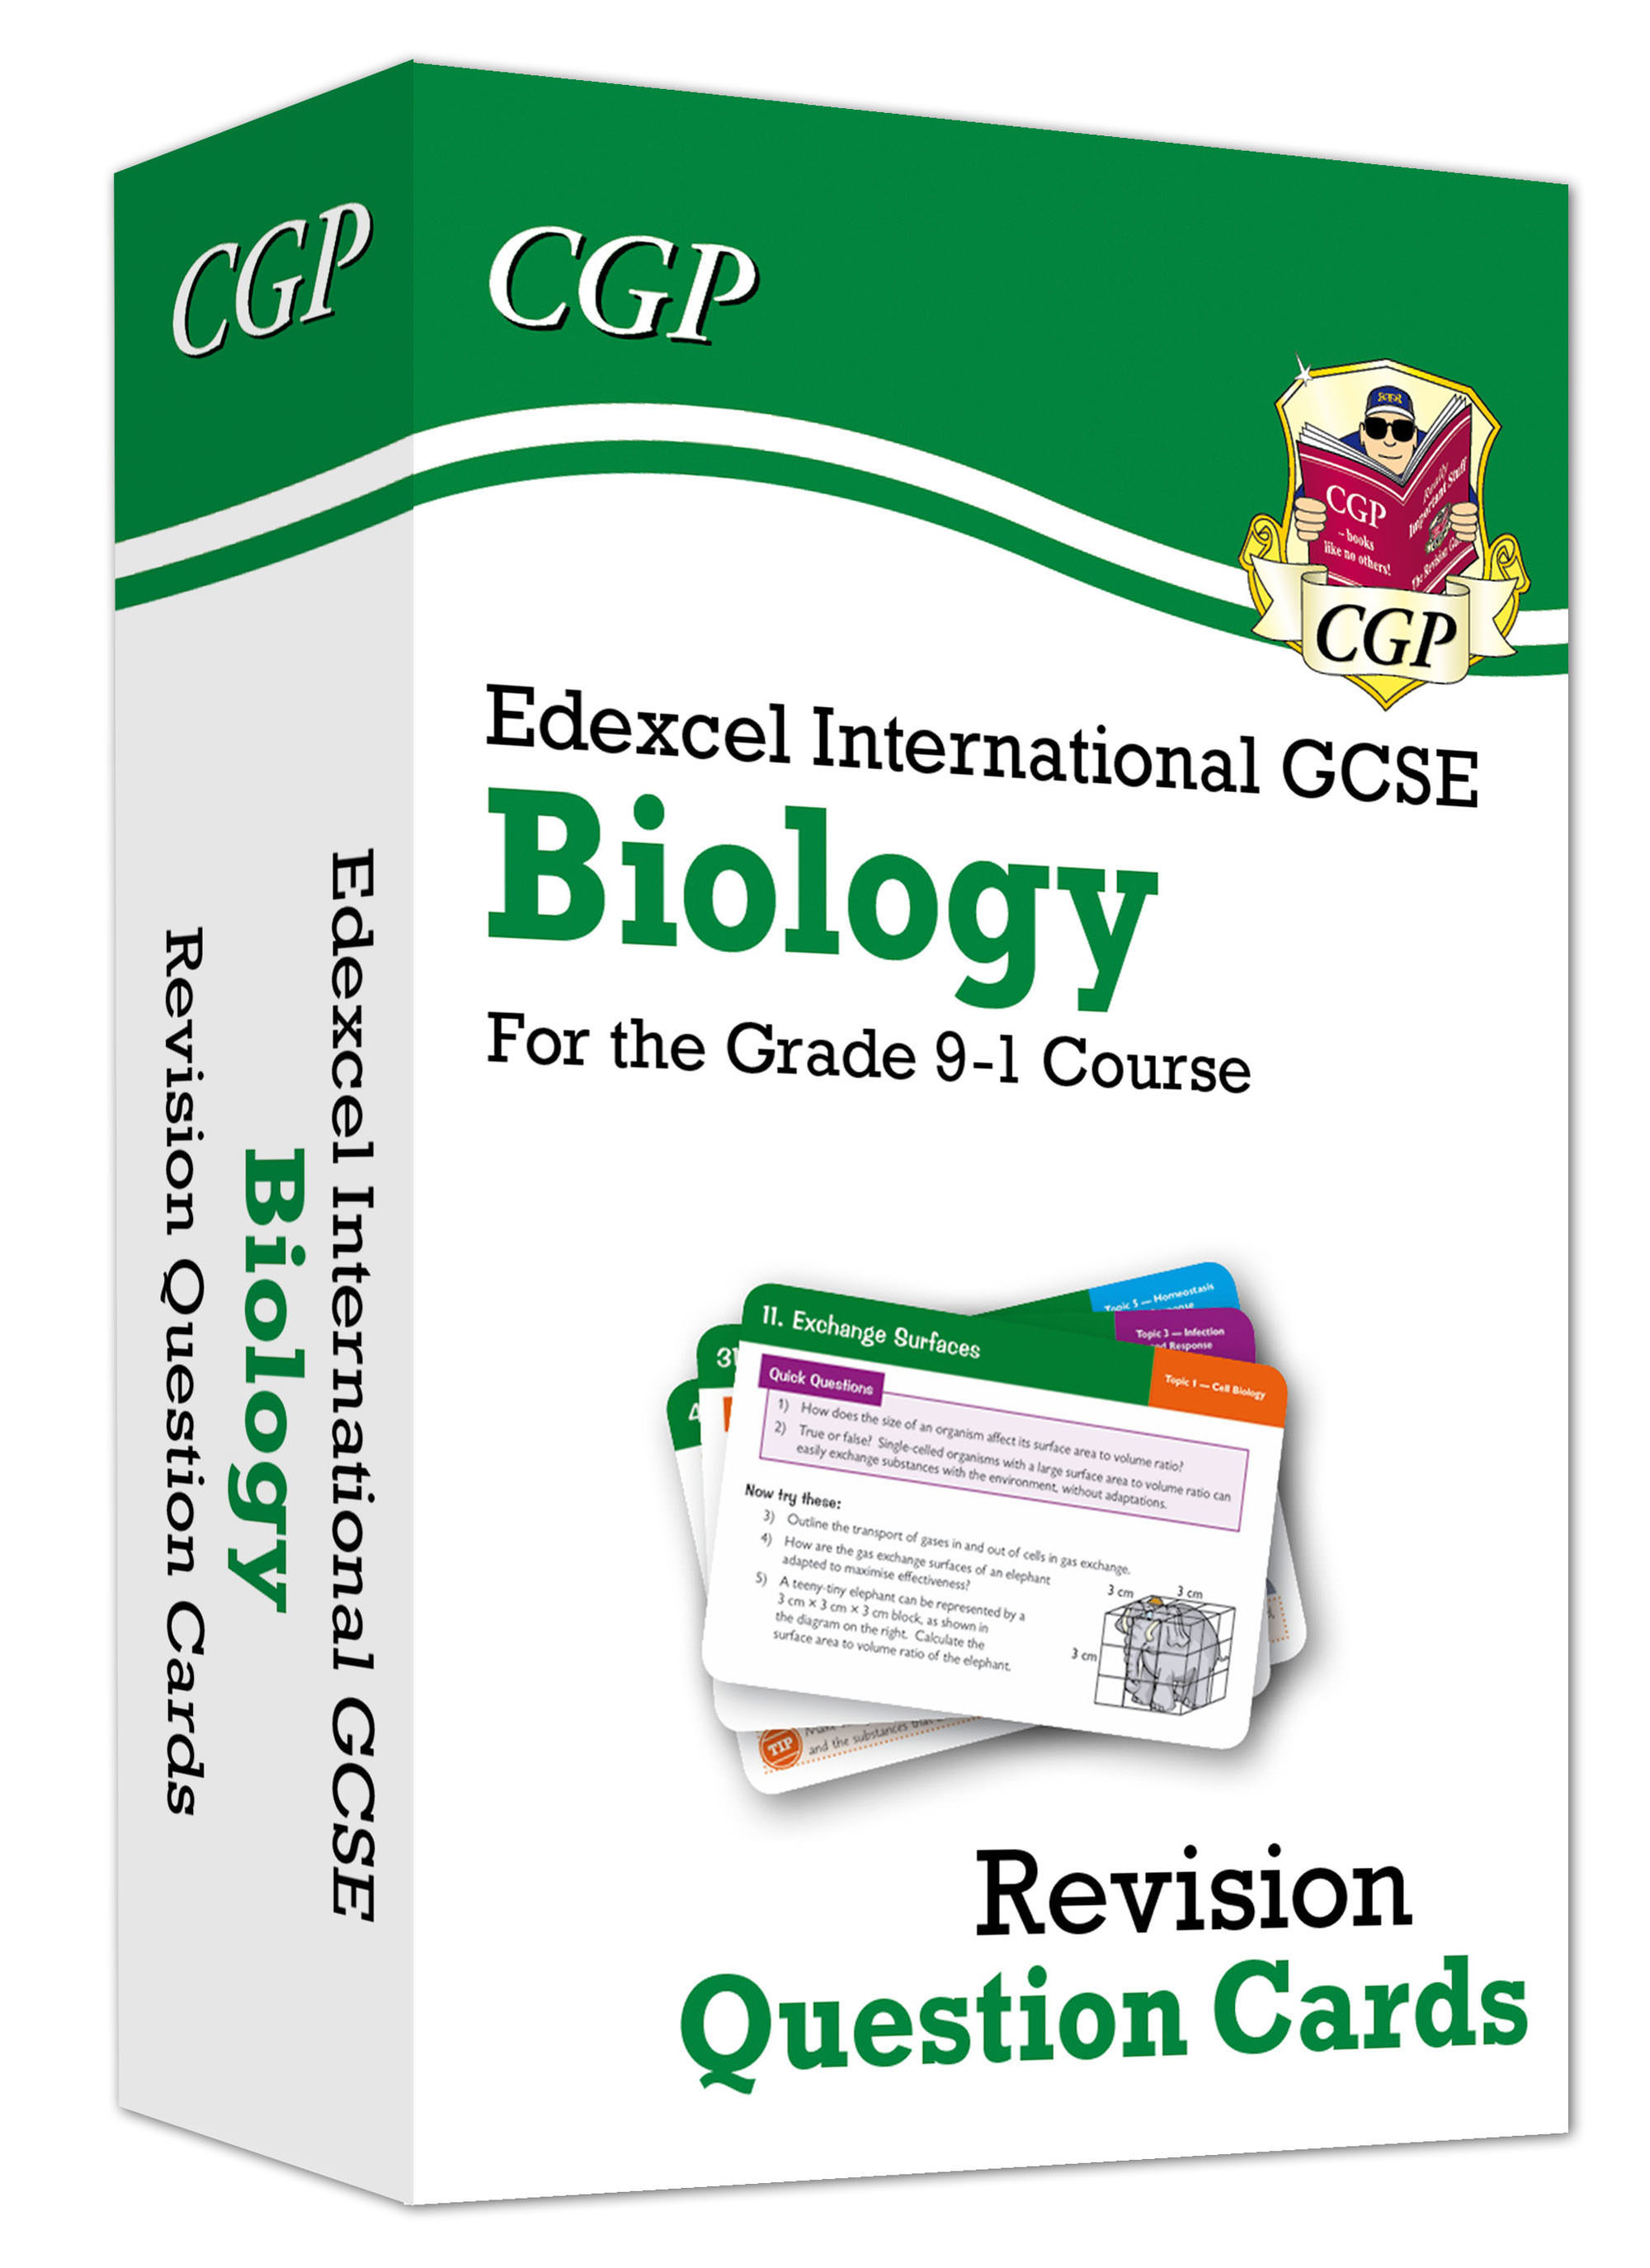 BEFI41D - New Grade 9-1 Edexcel International GCSE Biology: Revision Question Cards Online Edition